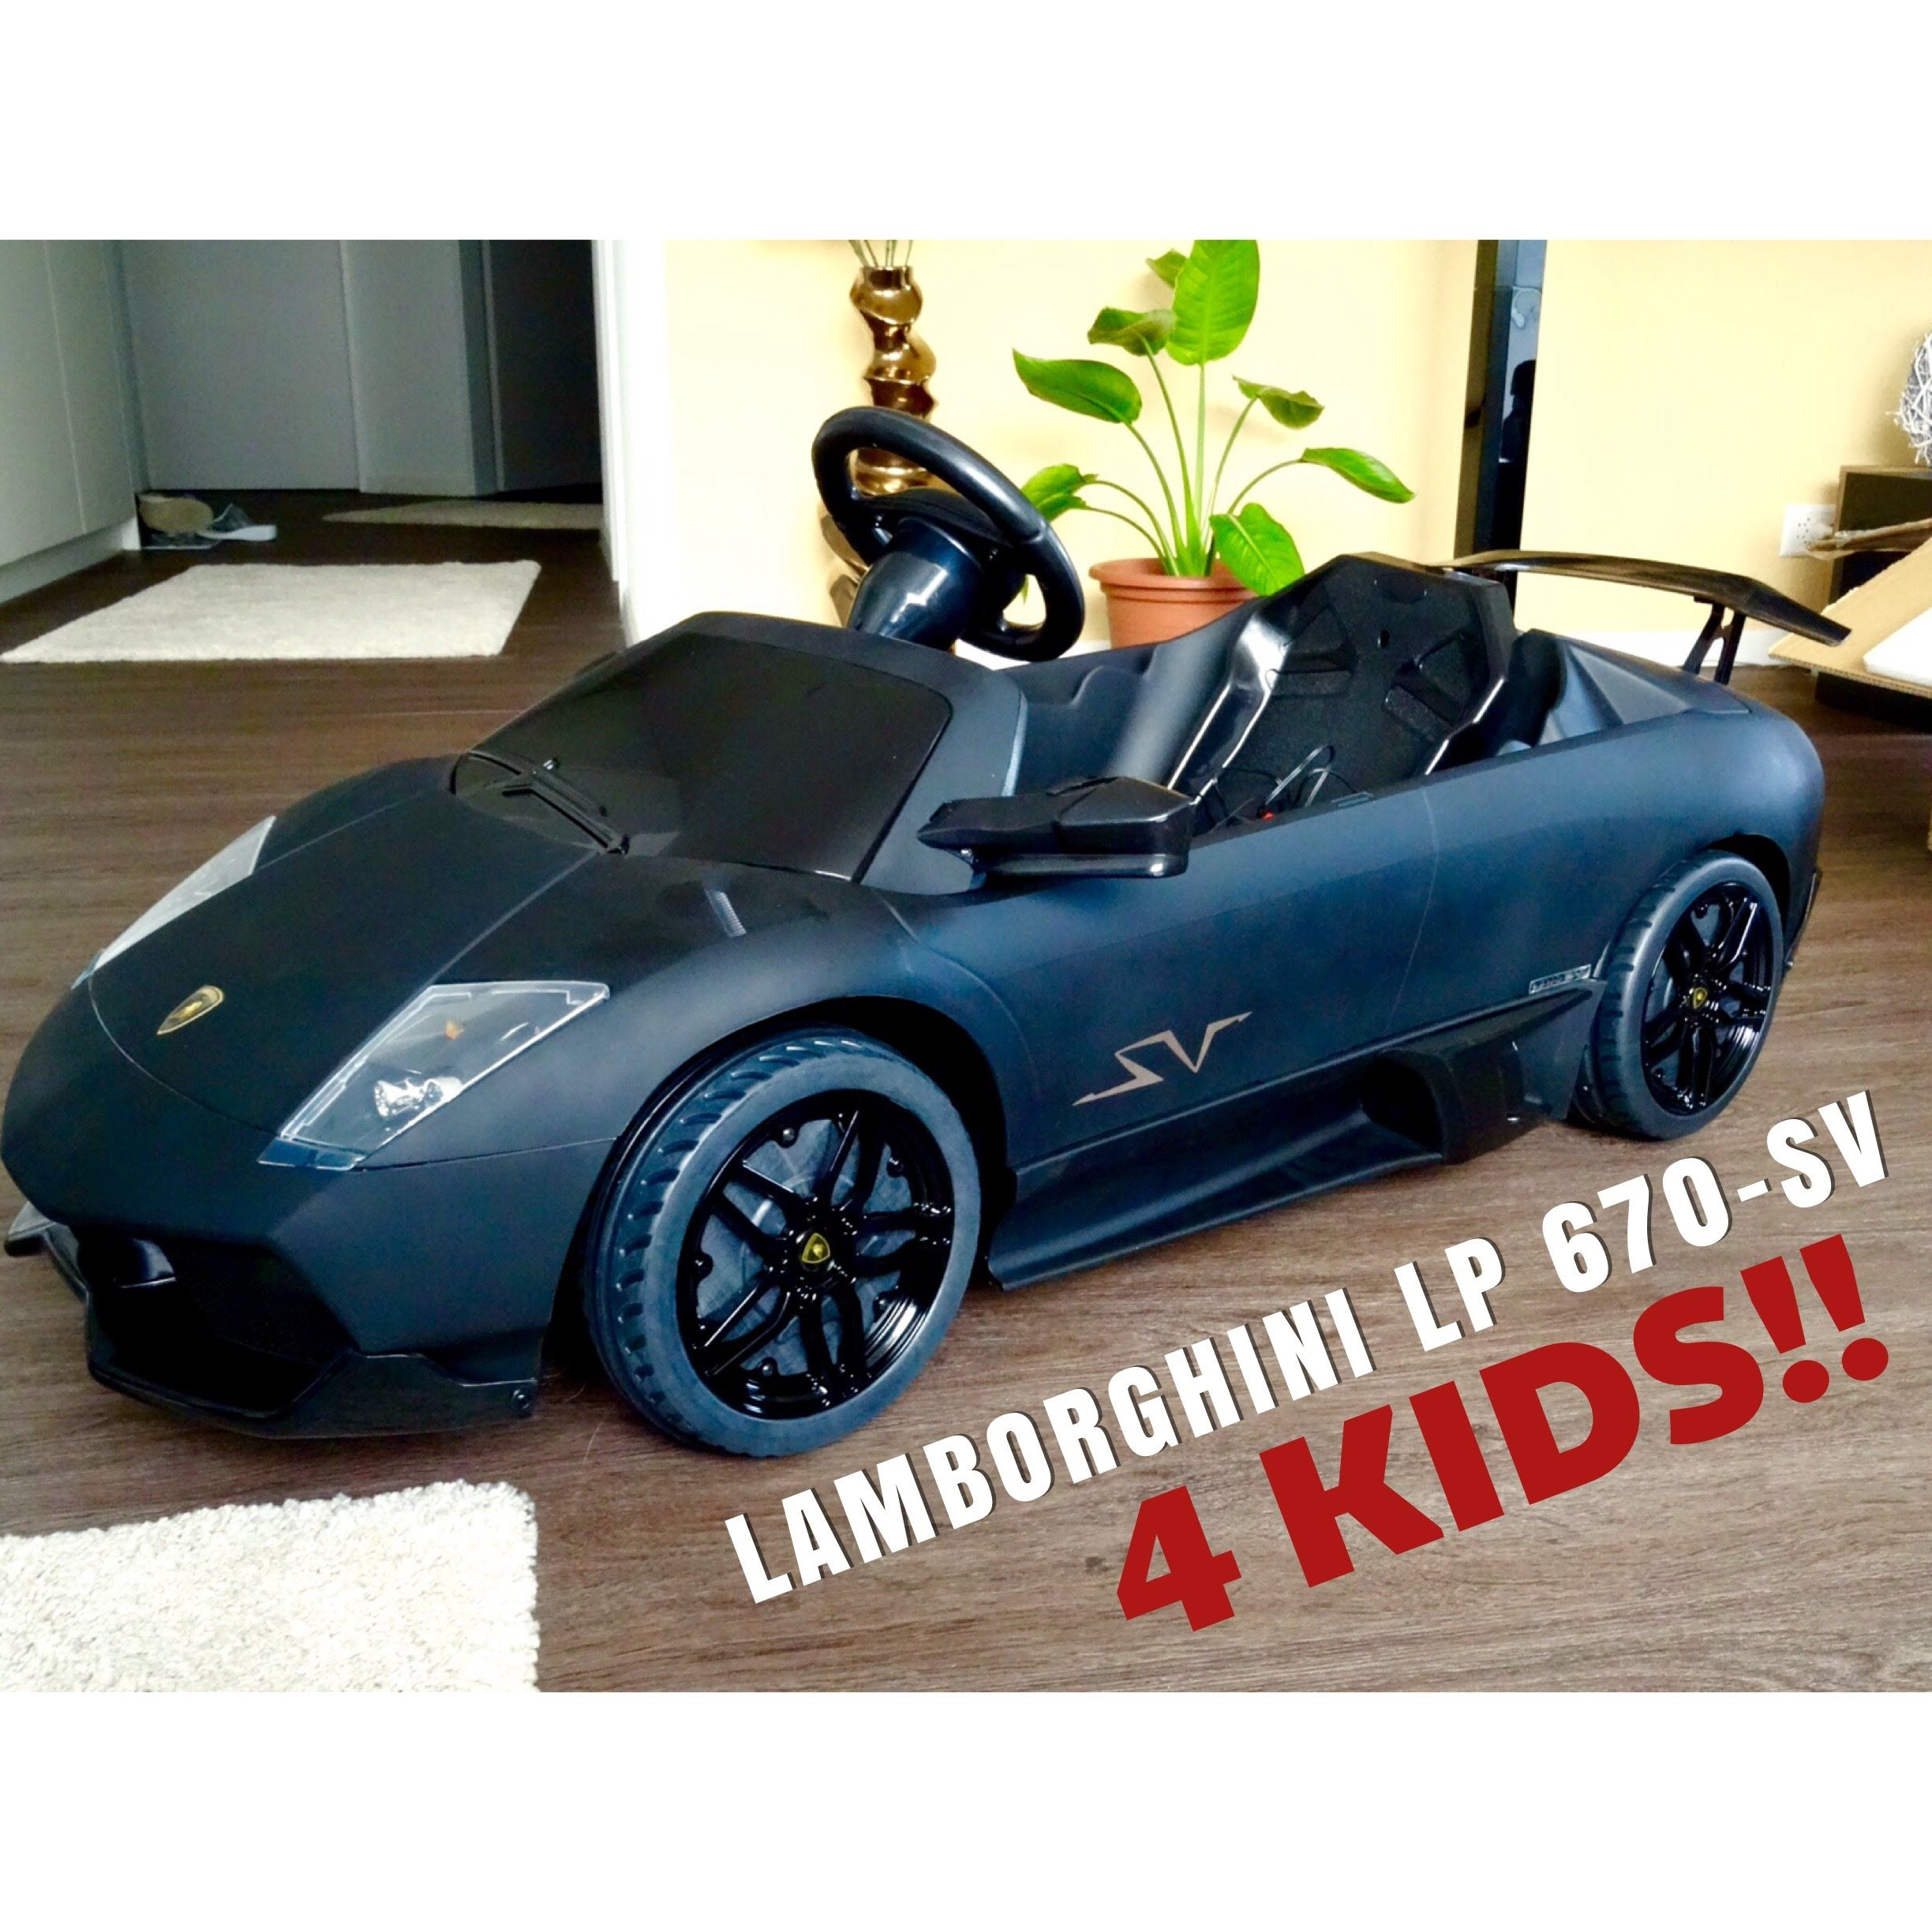 Awesome LAMBORGHINI MURCIELAGO LP 670 SV 12V Electric Car For Kids! #PART 1